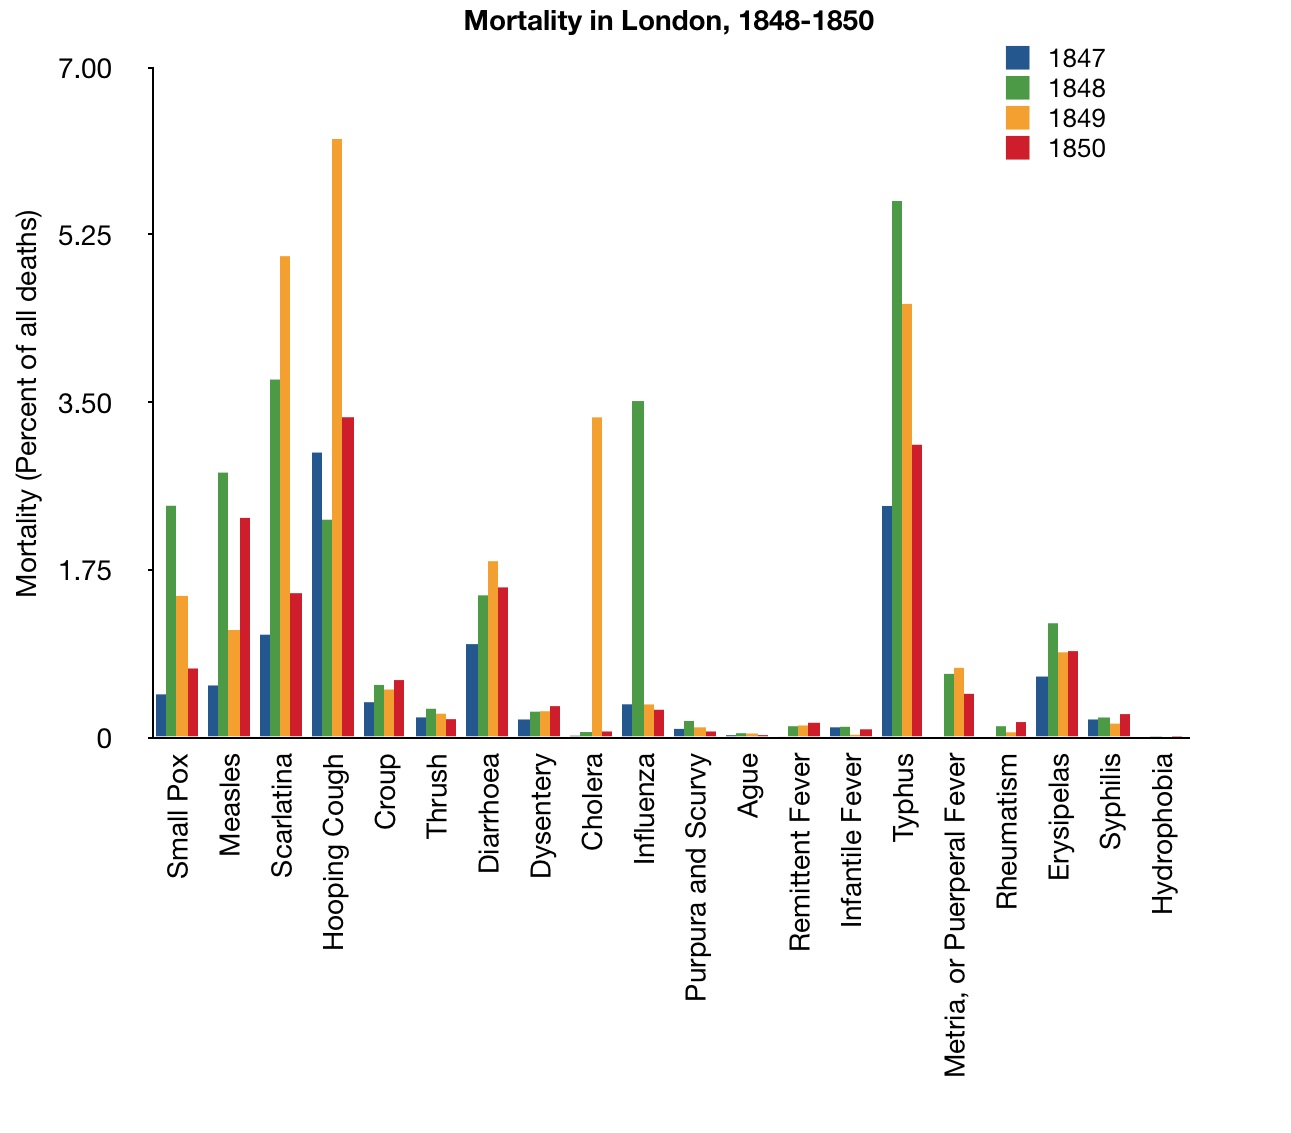 Mortality in the Metropolis - chart